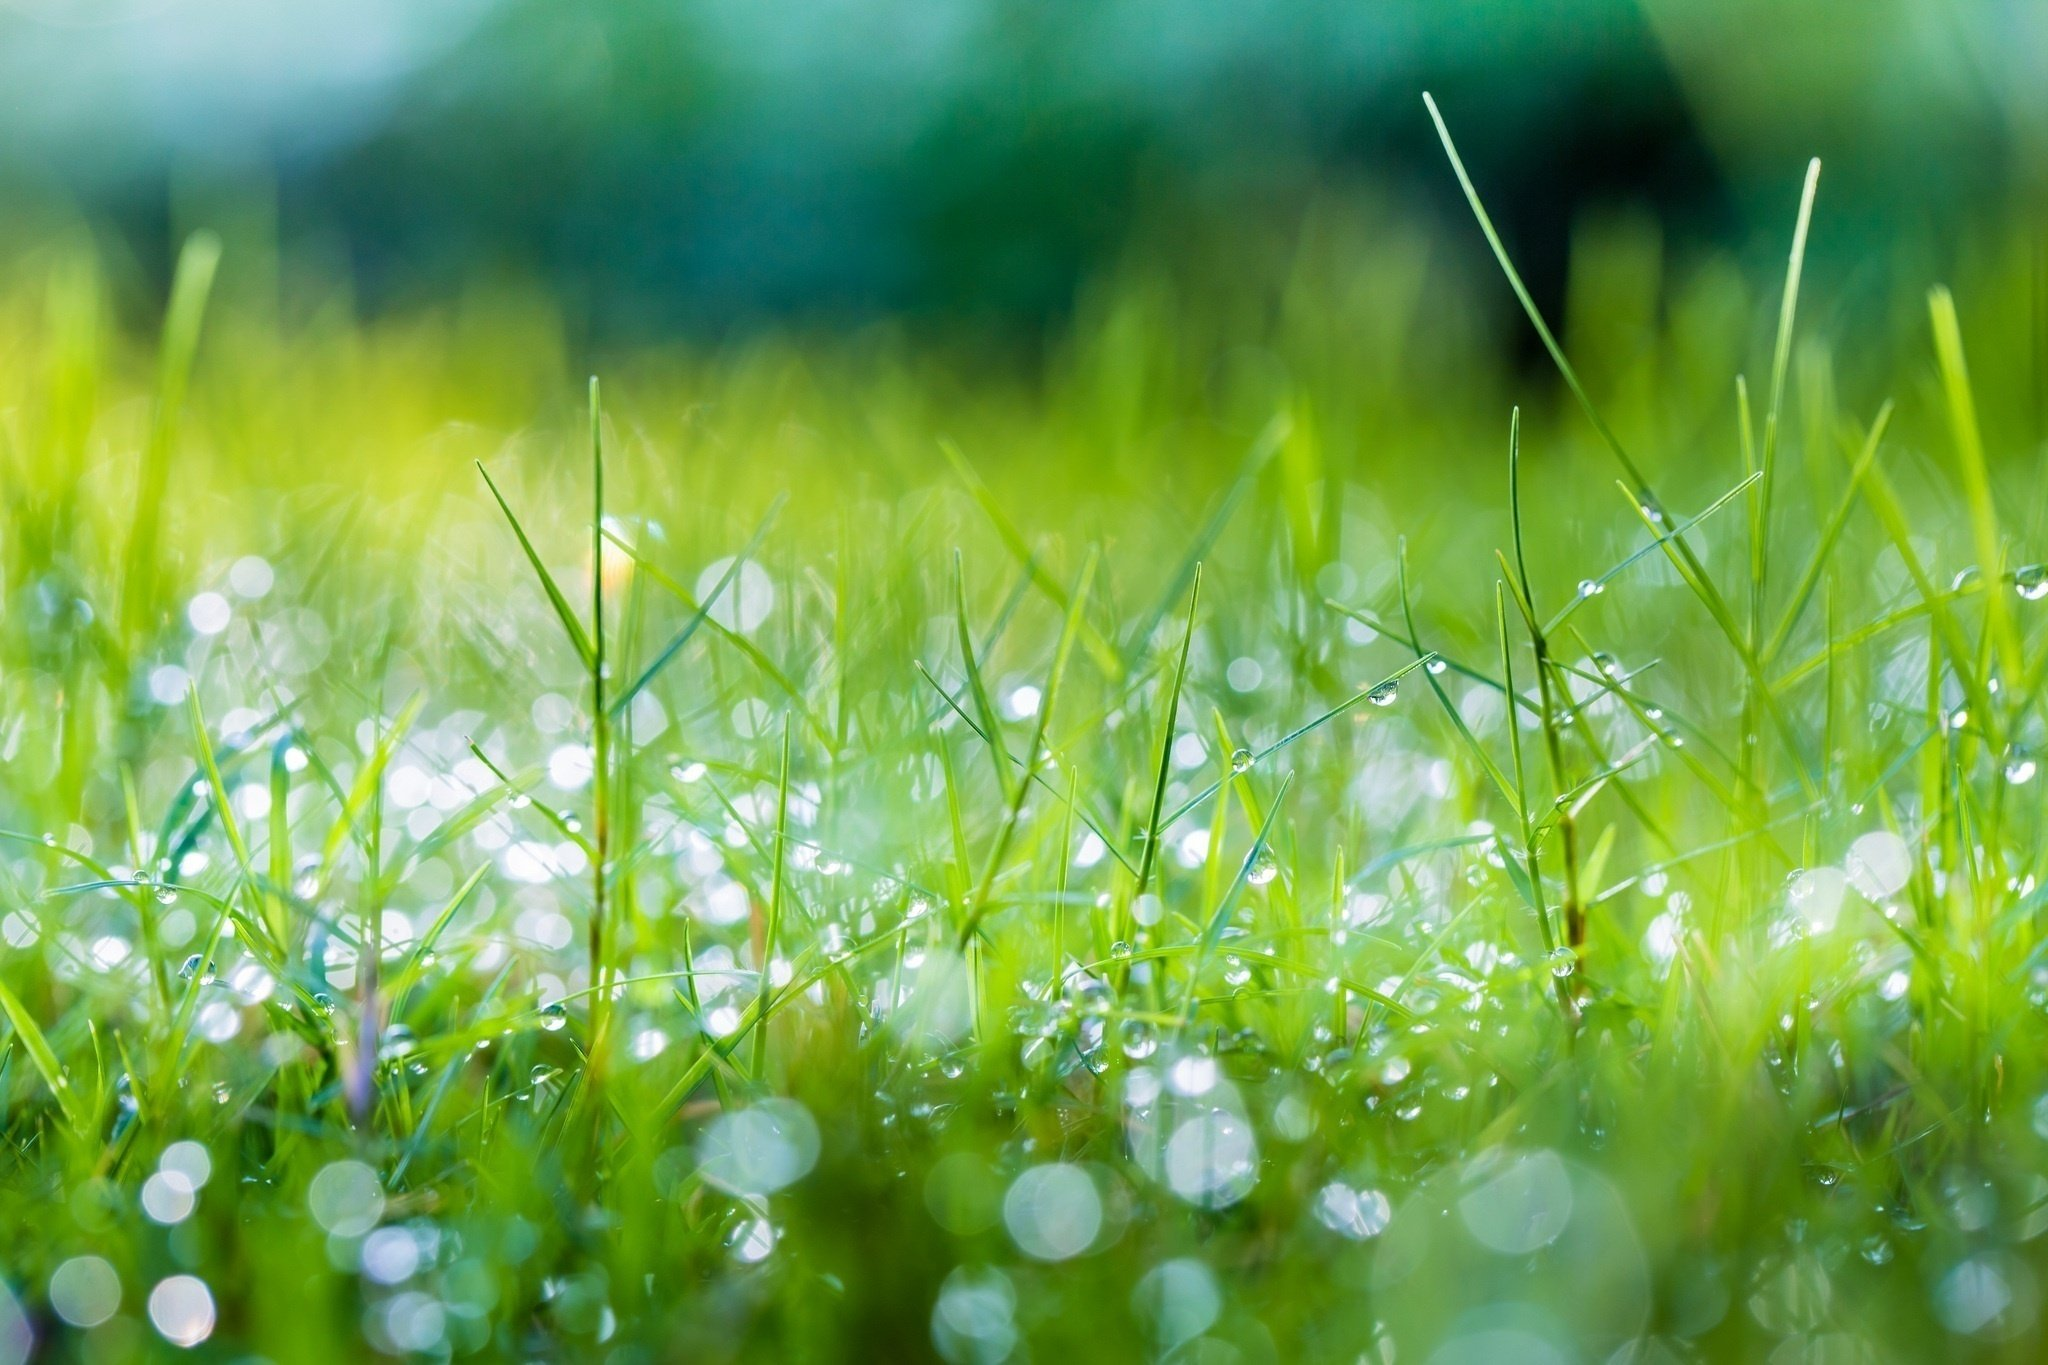 Fall Season Desktop Wallpaper Grass Dew Drops Shine Summer Macro Green Wallpaper